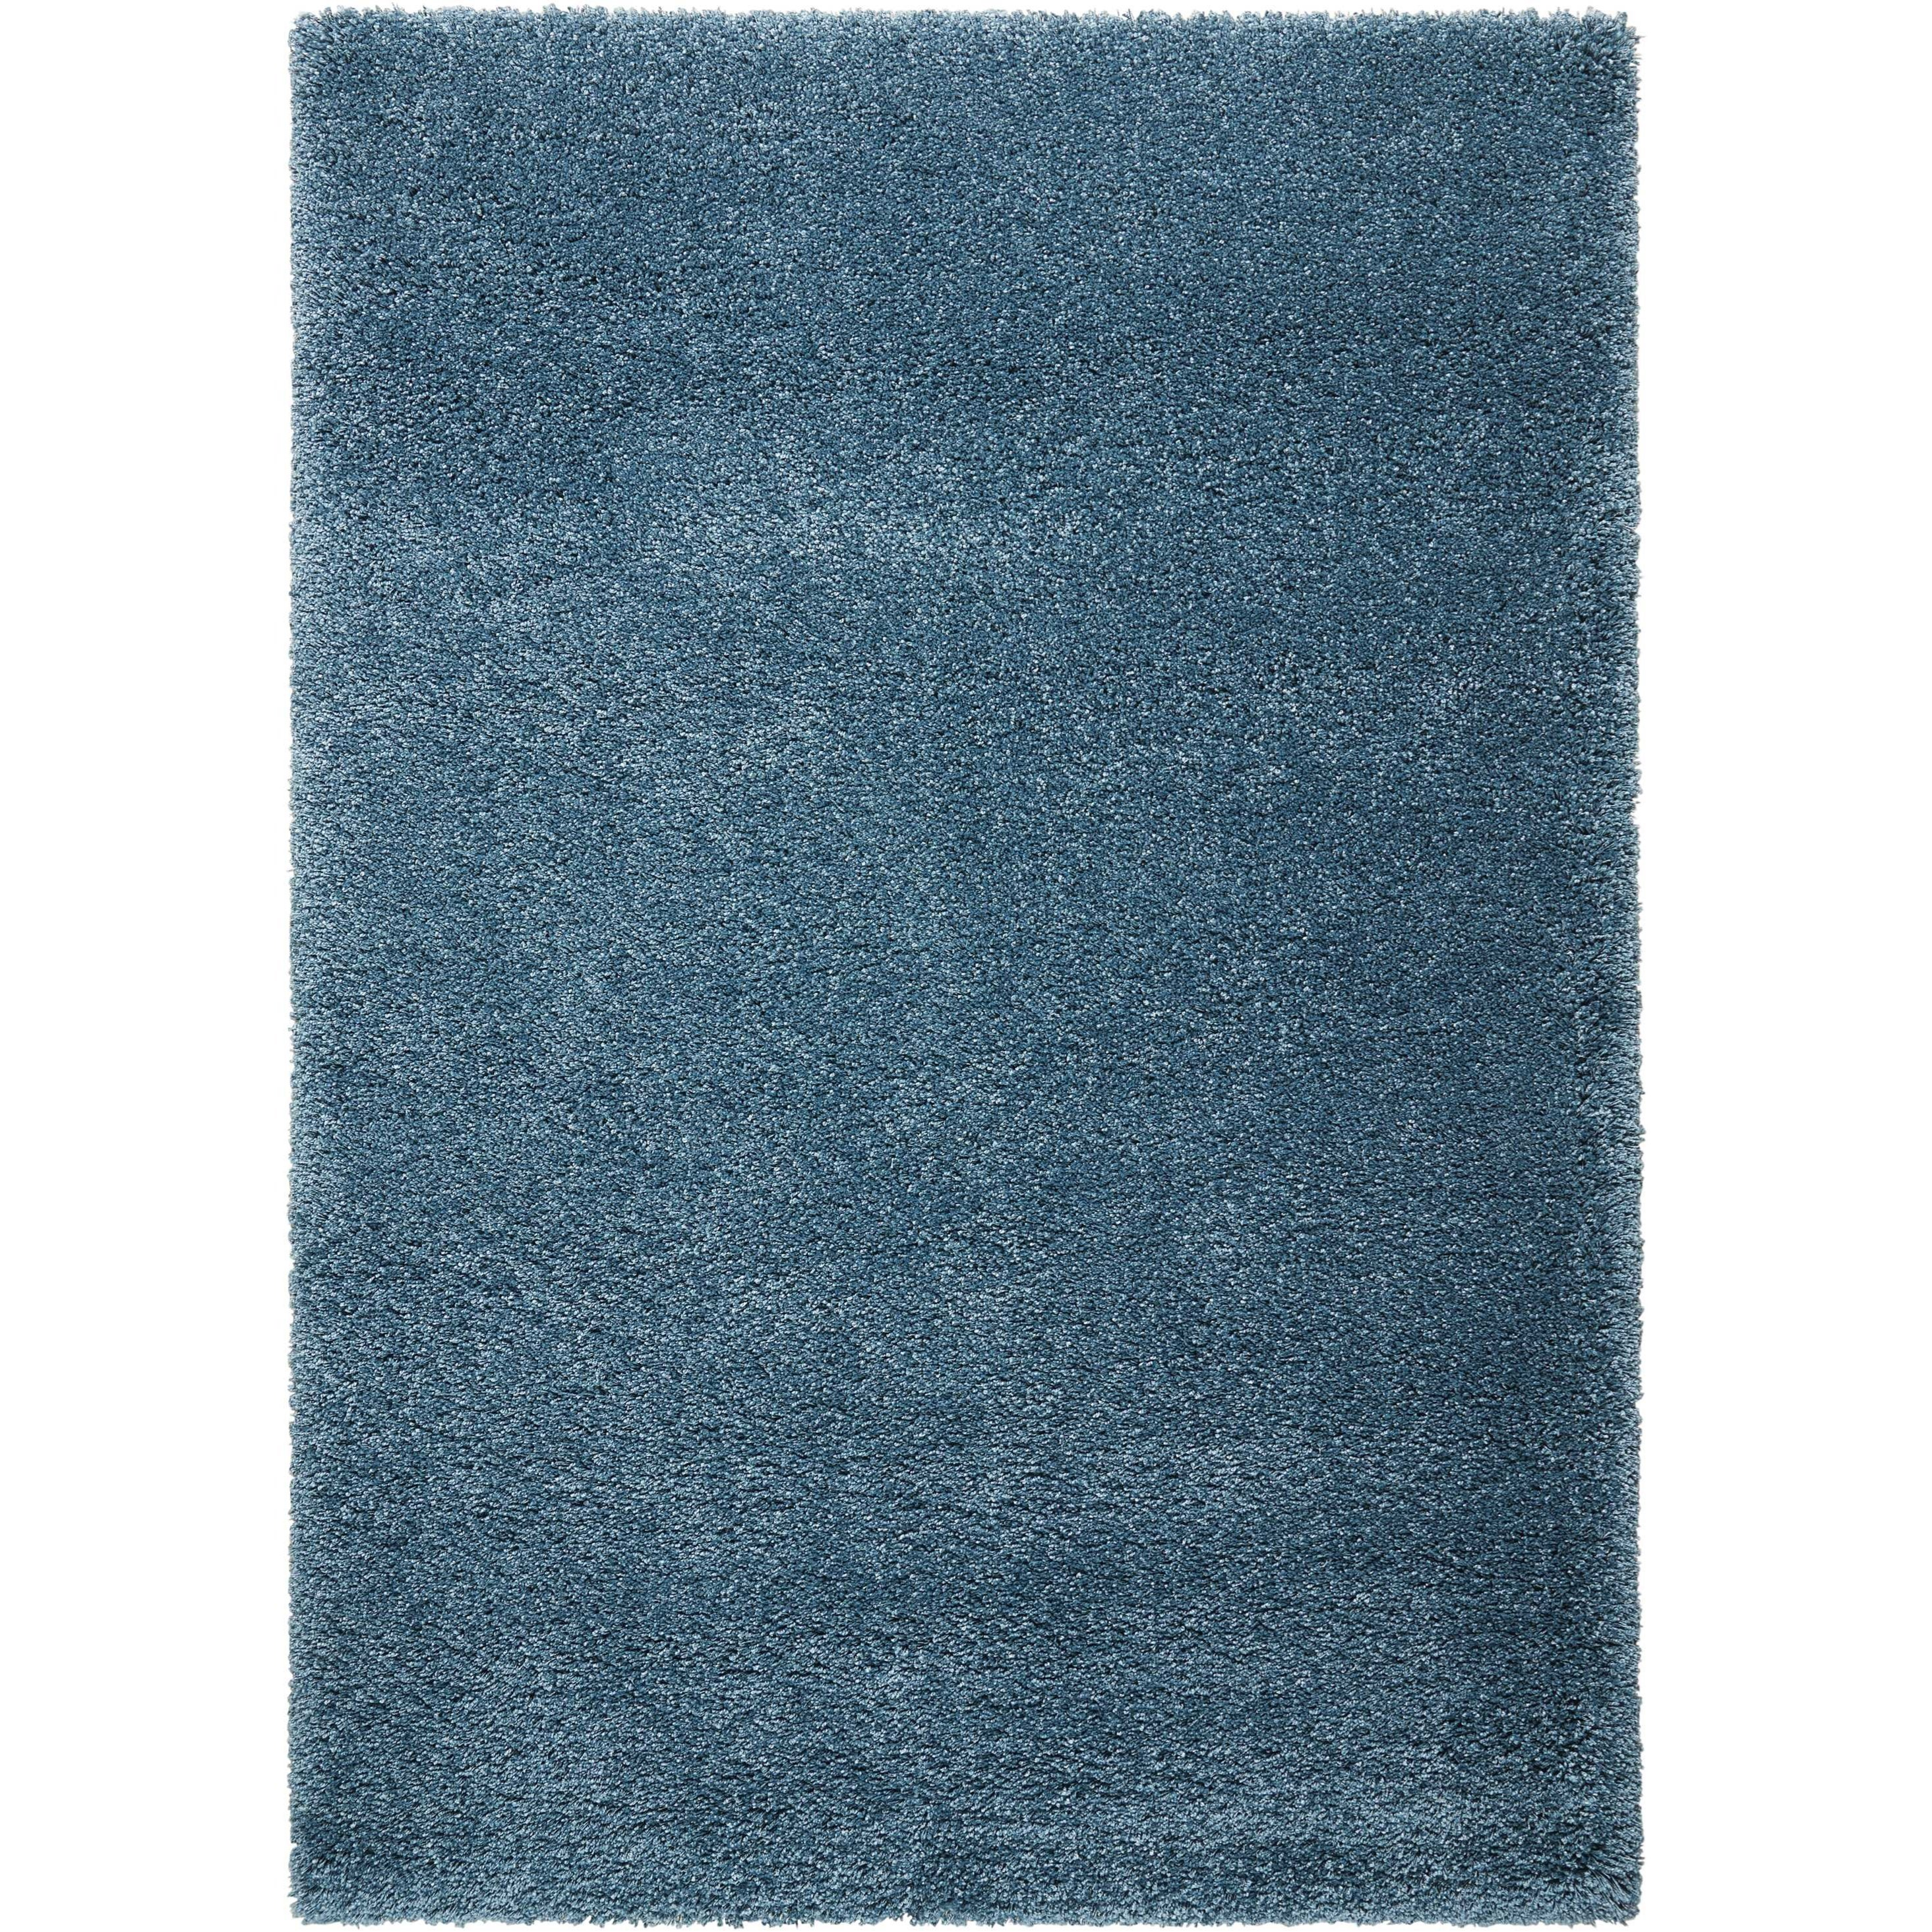 "Amore2 5'3"" X 7'5"" Slate Blue Rug by Nourison at Home Collections Furniture"